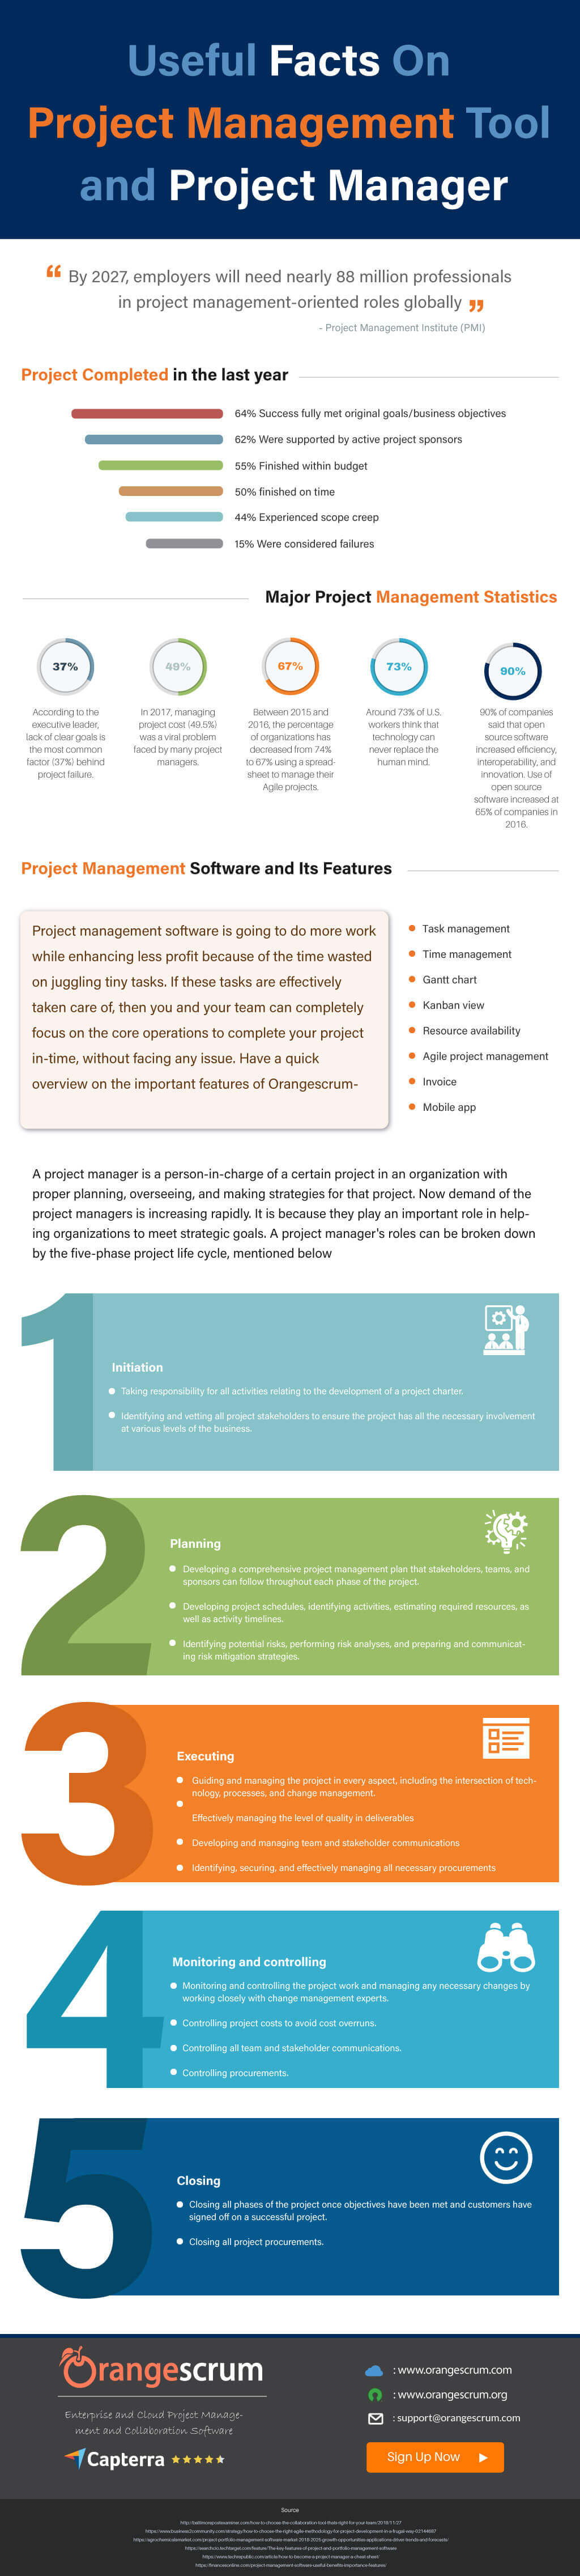 Useful Facts On Project Management Tool and Project Managers